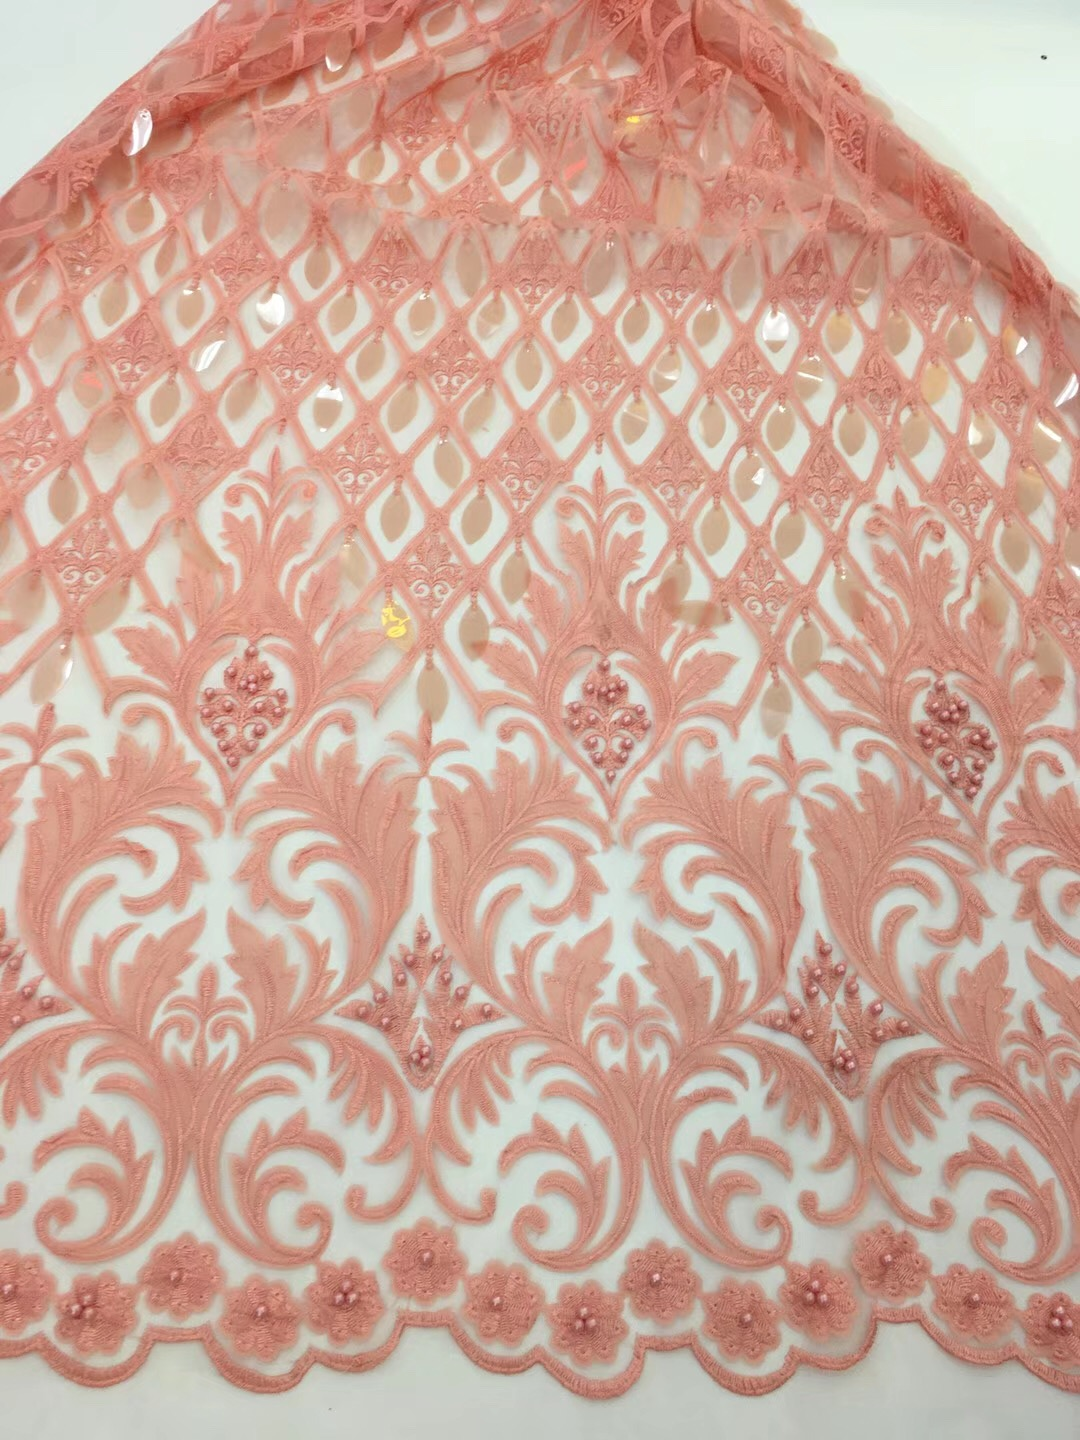 High quality african wedding lace fabric 2019 Orange sequin fabric embroidery tulle french net lace for wedding dress RF166